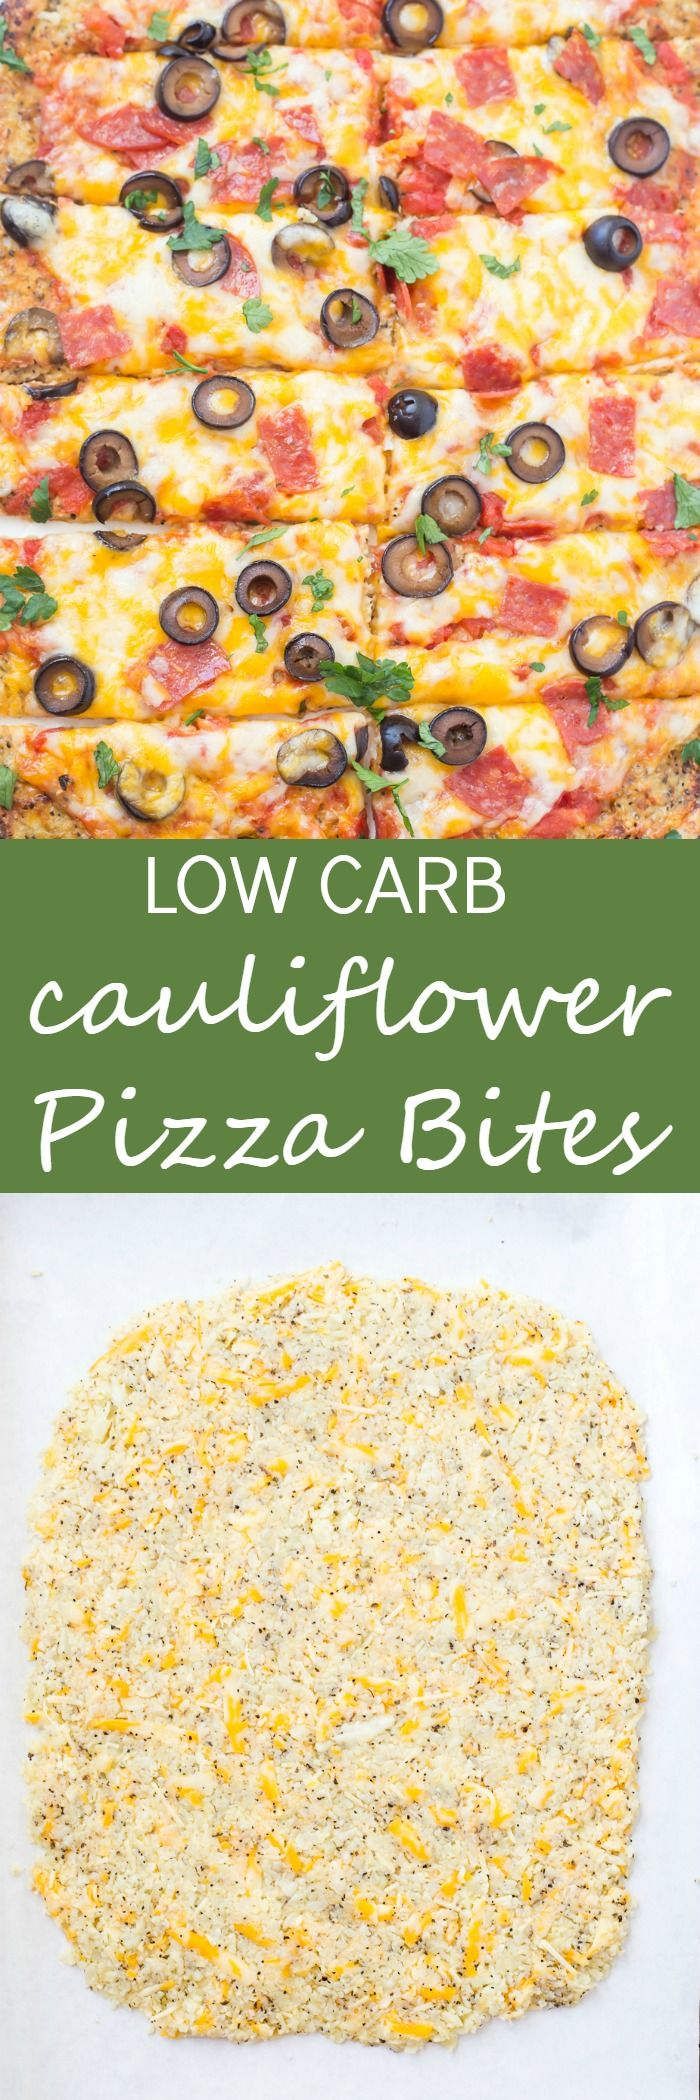 Low Carb Cauliflower Pizza Bites are hands-down the best pizza bites! Loaded with fresh vegetables, spices, and seasonings. Your taste buds will be in heaven and will not even notice a difference from traditional pizza. Paleo and Whole 30 compliant!